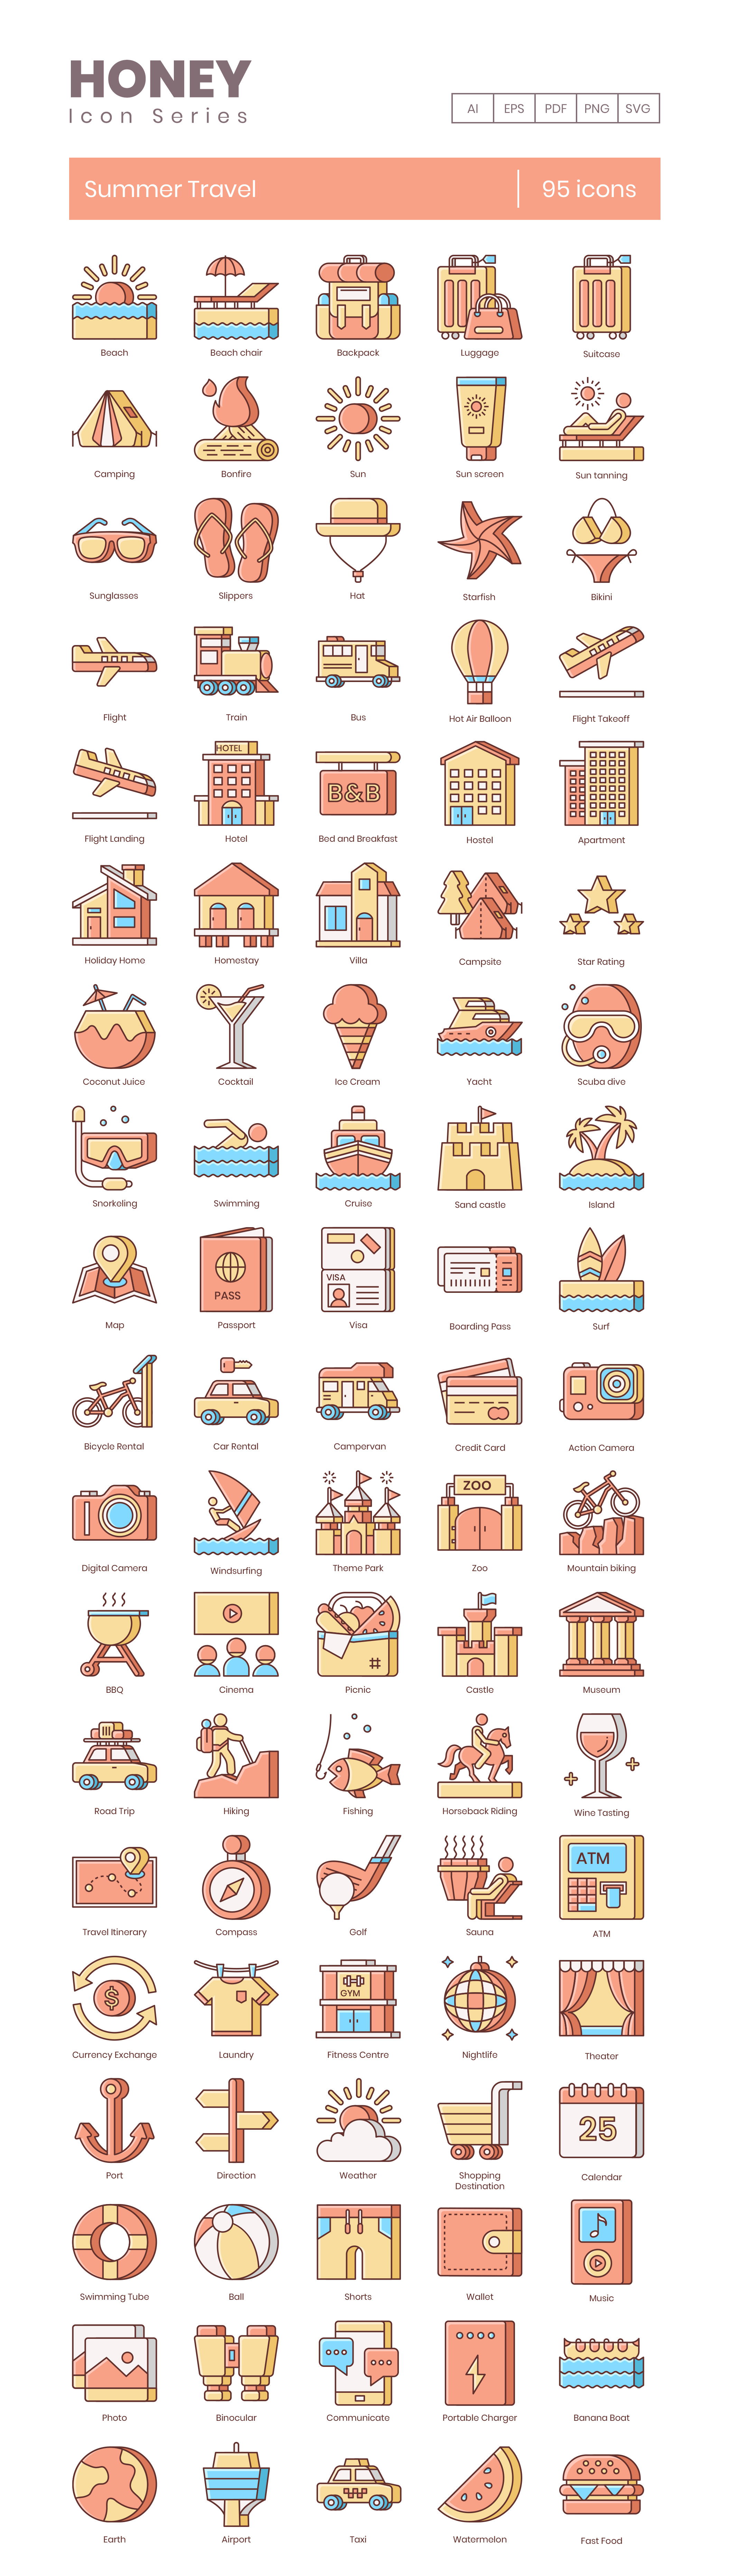 Summer Vacation Vector Icons Preview Image